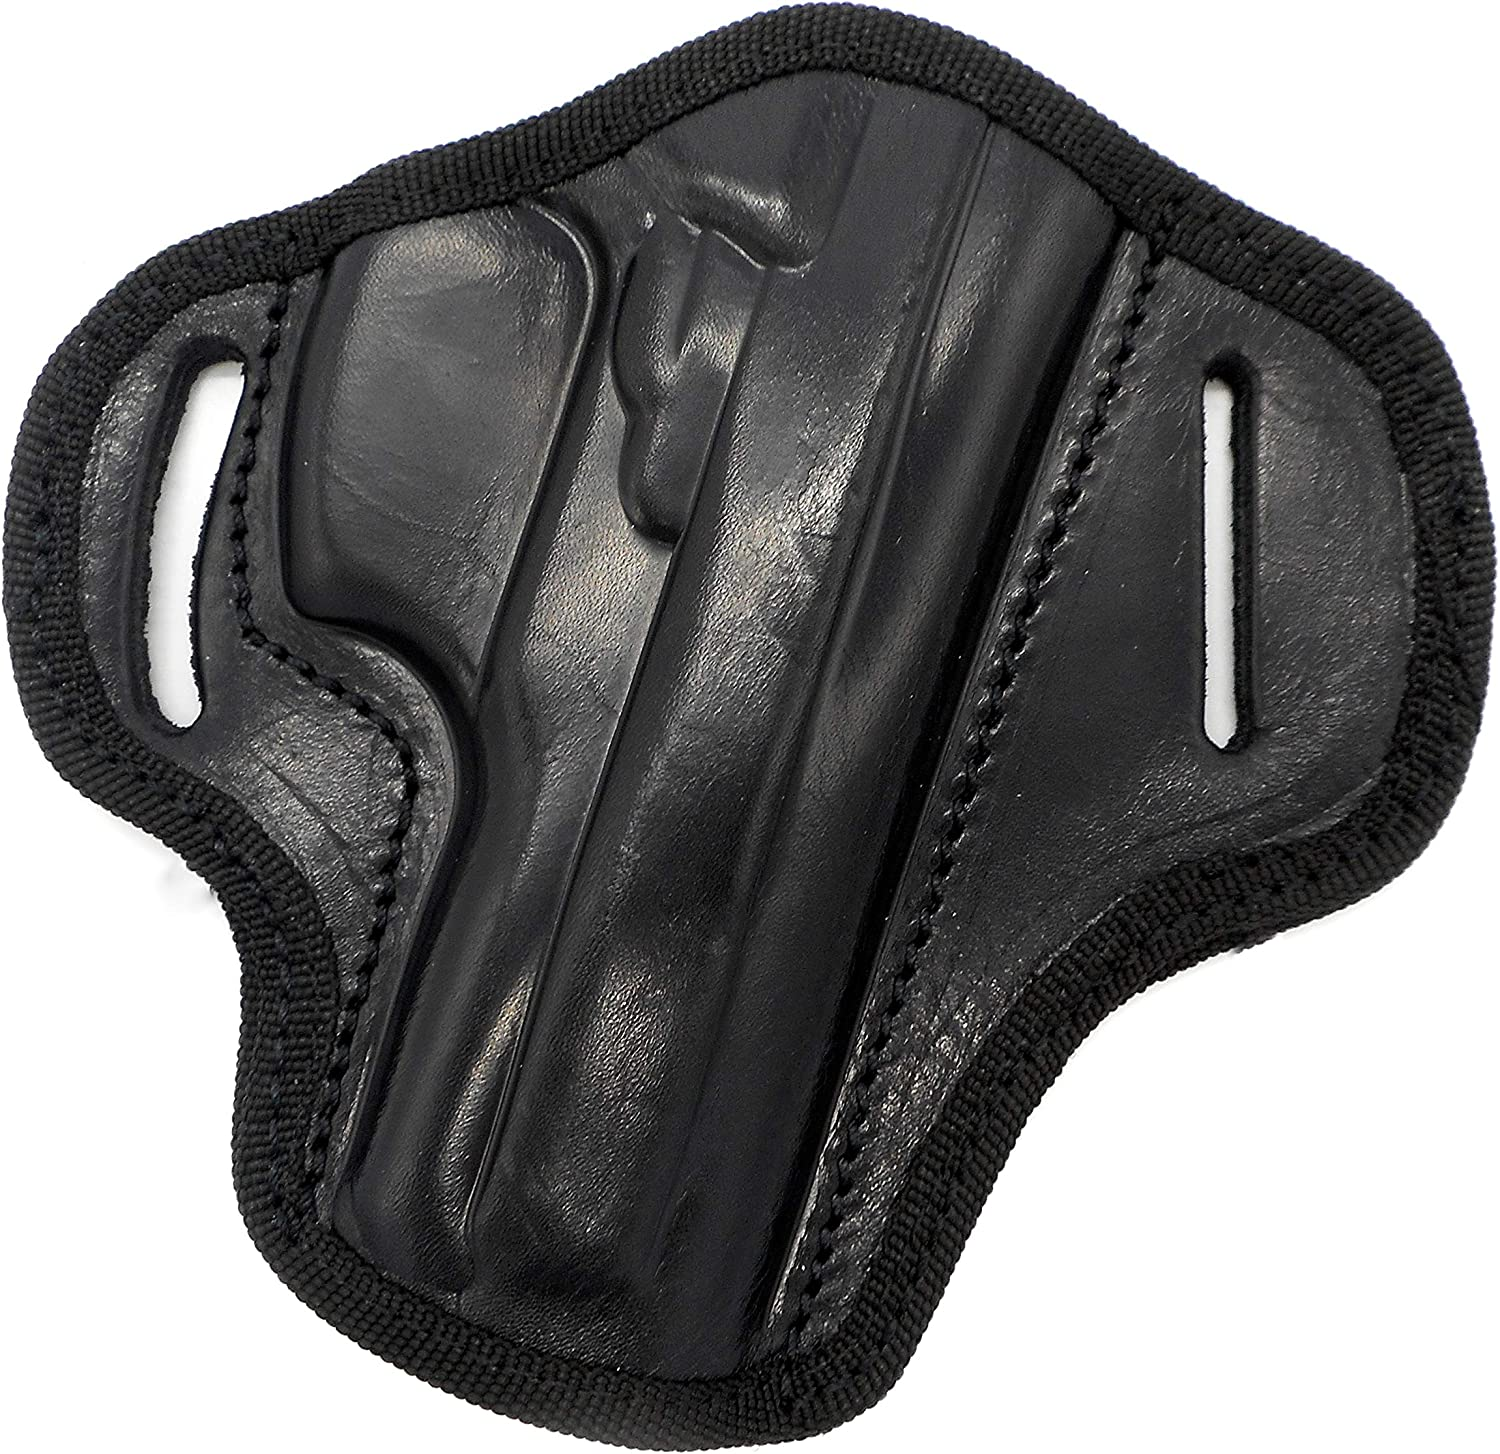 HOLSTERMART USA Right Hand OWB Open Black 発売モデル Holster Le 新品■送料無料■ Top in Belt